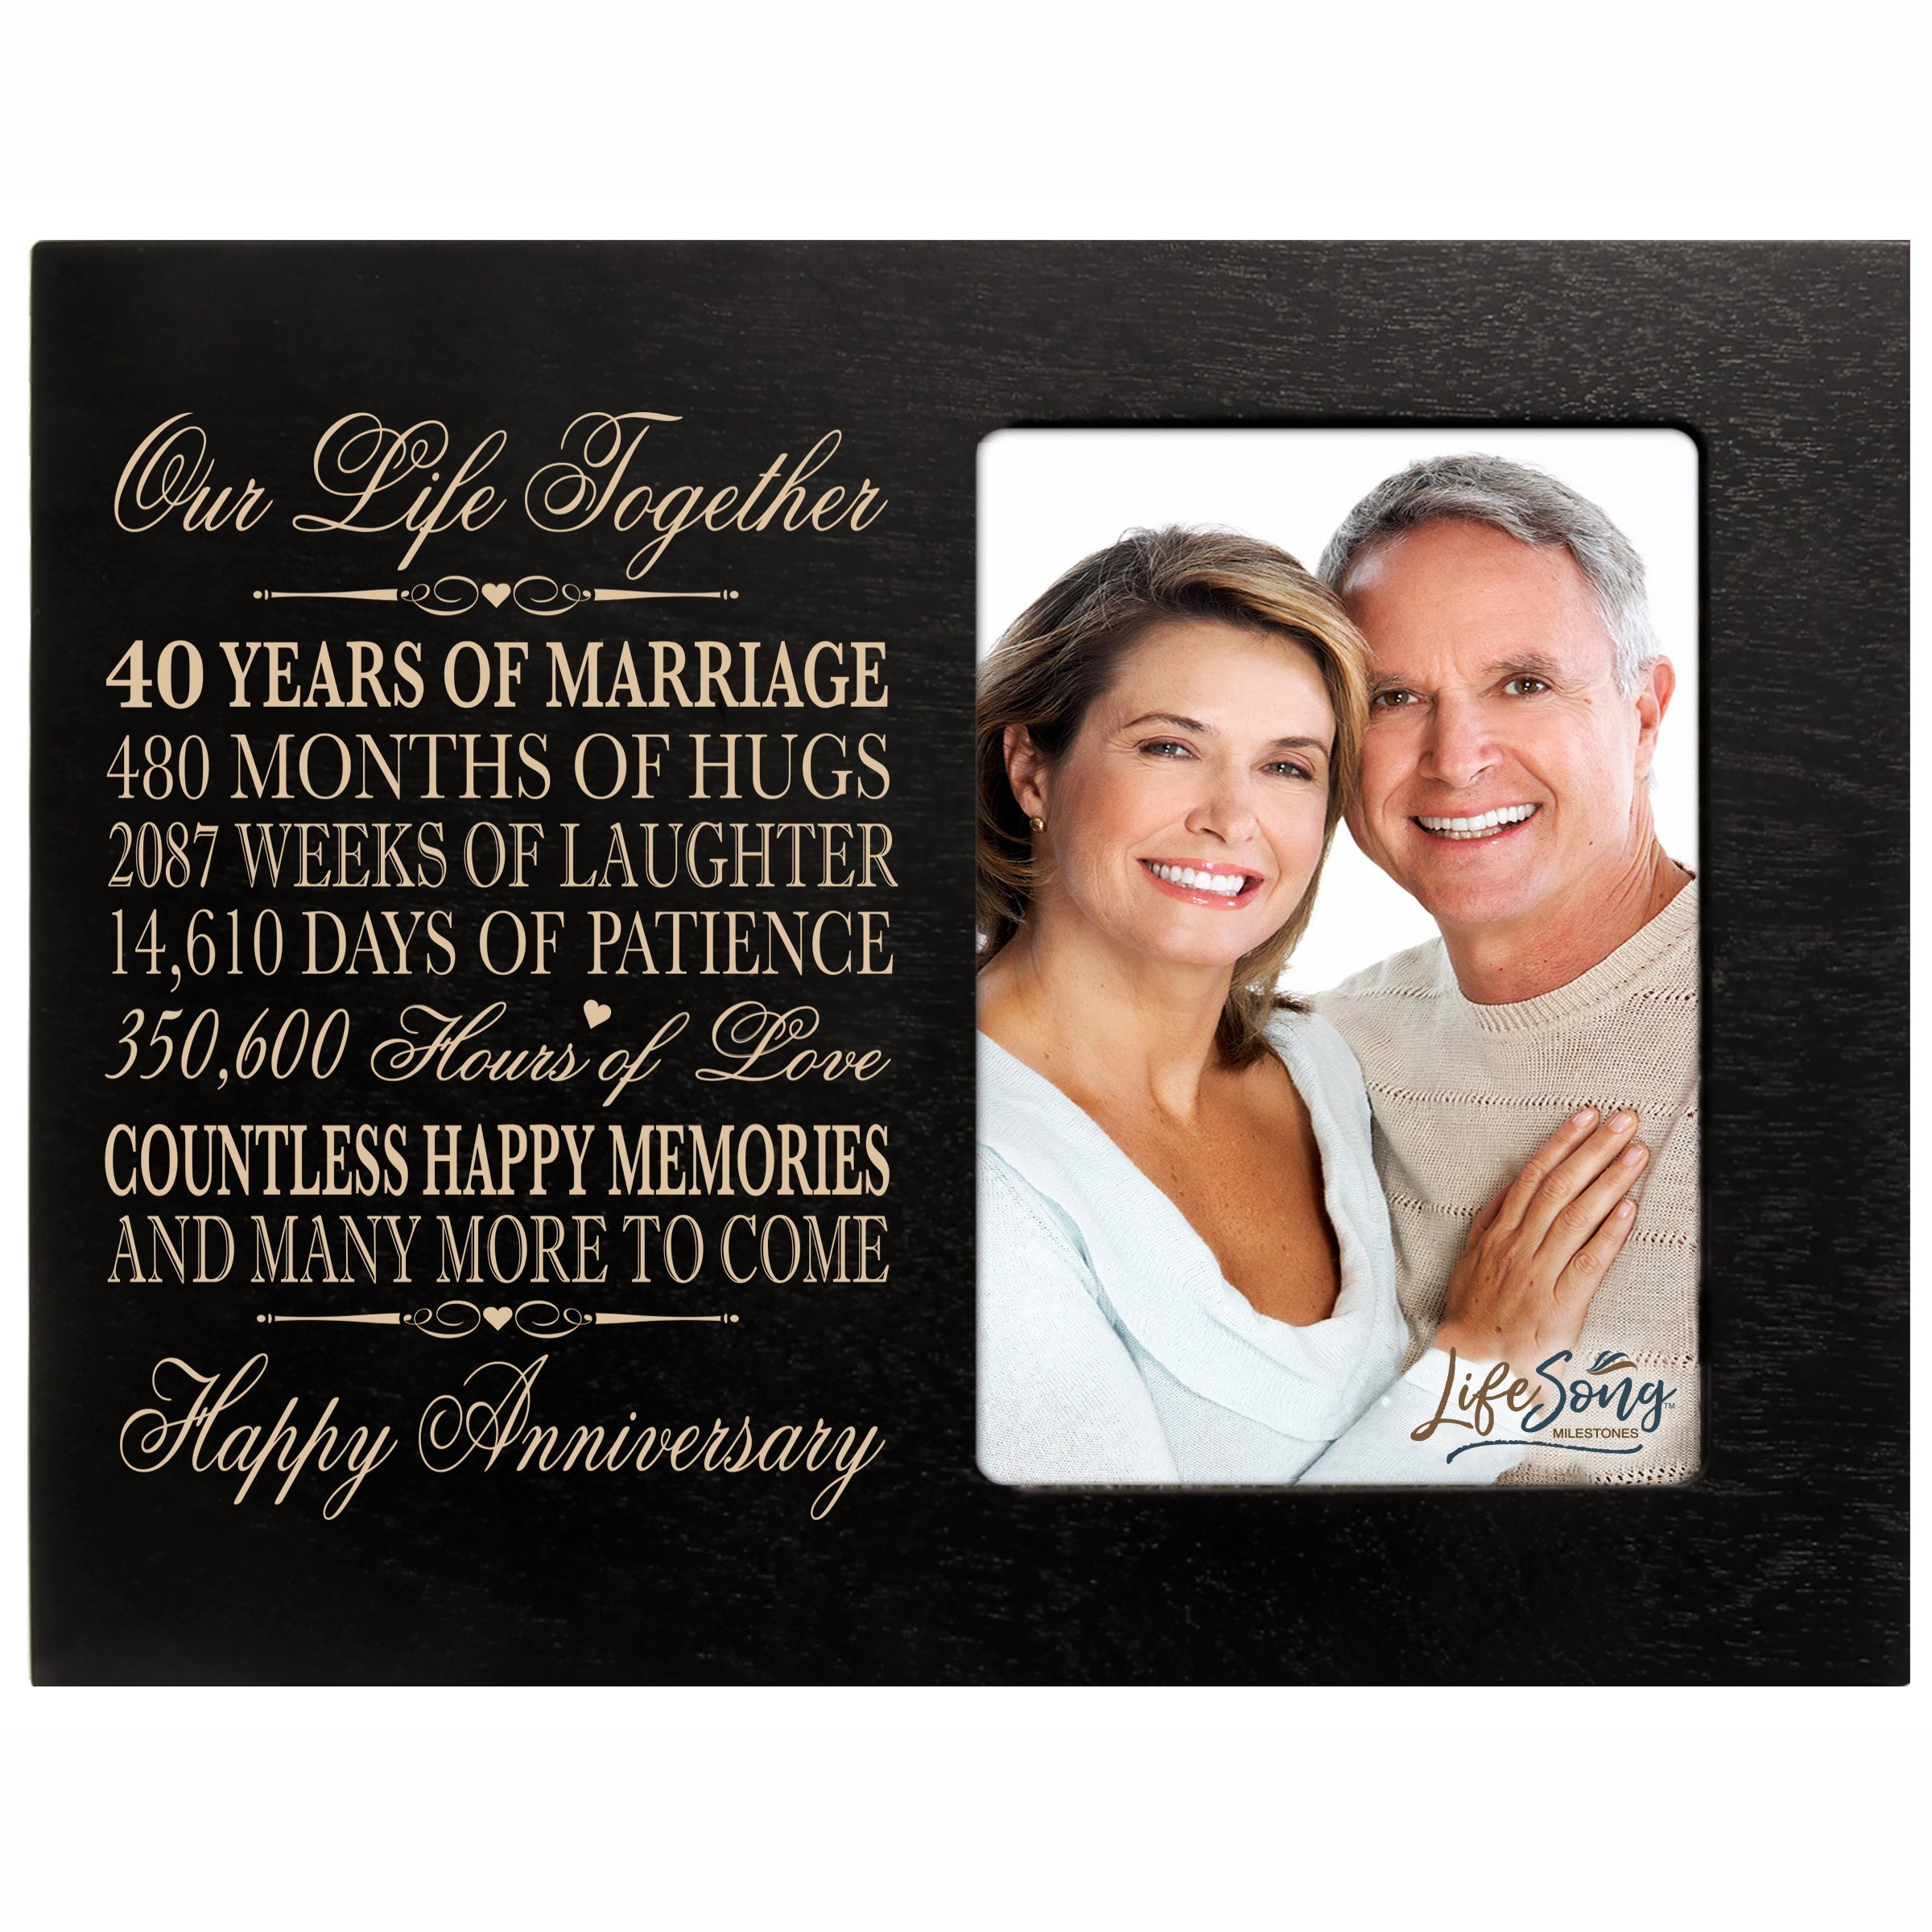 LifeSong Milestones Forty Year Wedding Anniversary Frame Gift for Couple him her Custom Engraved 40th Year Wedding Celebration Photo Frame Holds 1 4x6 Photo 8'' H X 10'' W (Black)